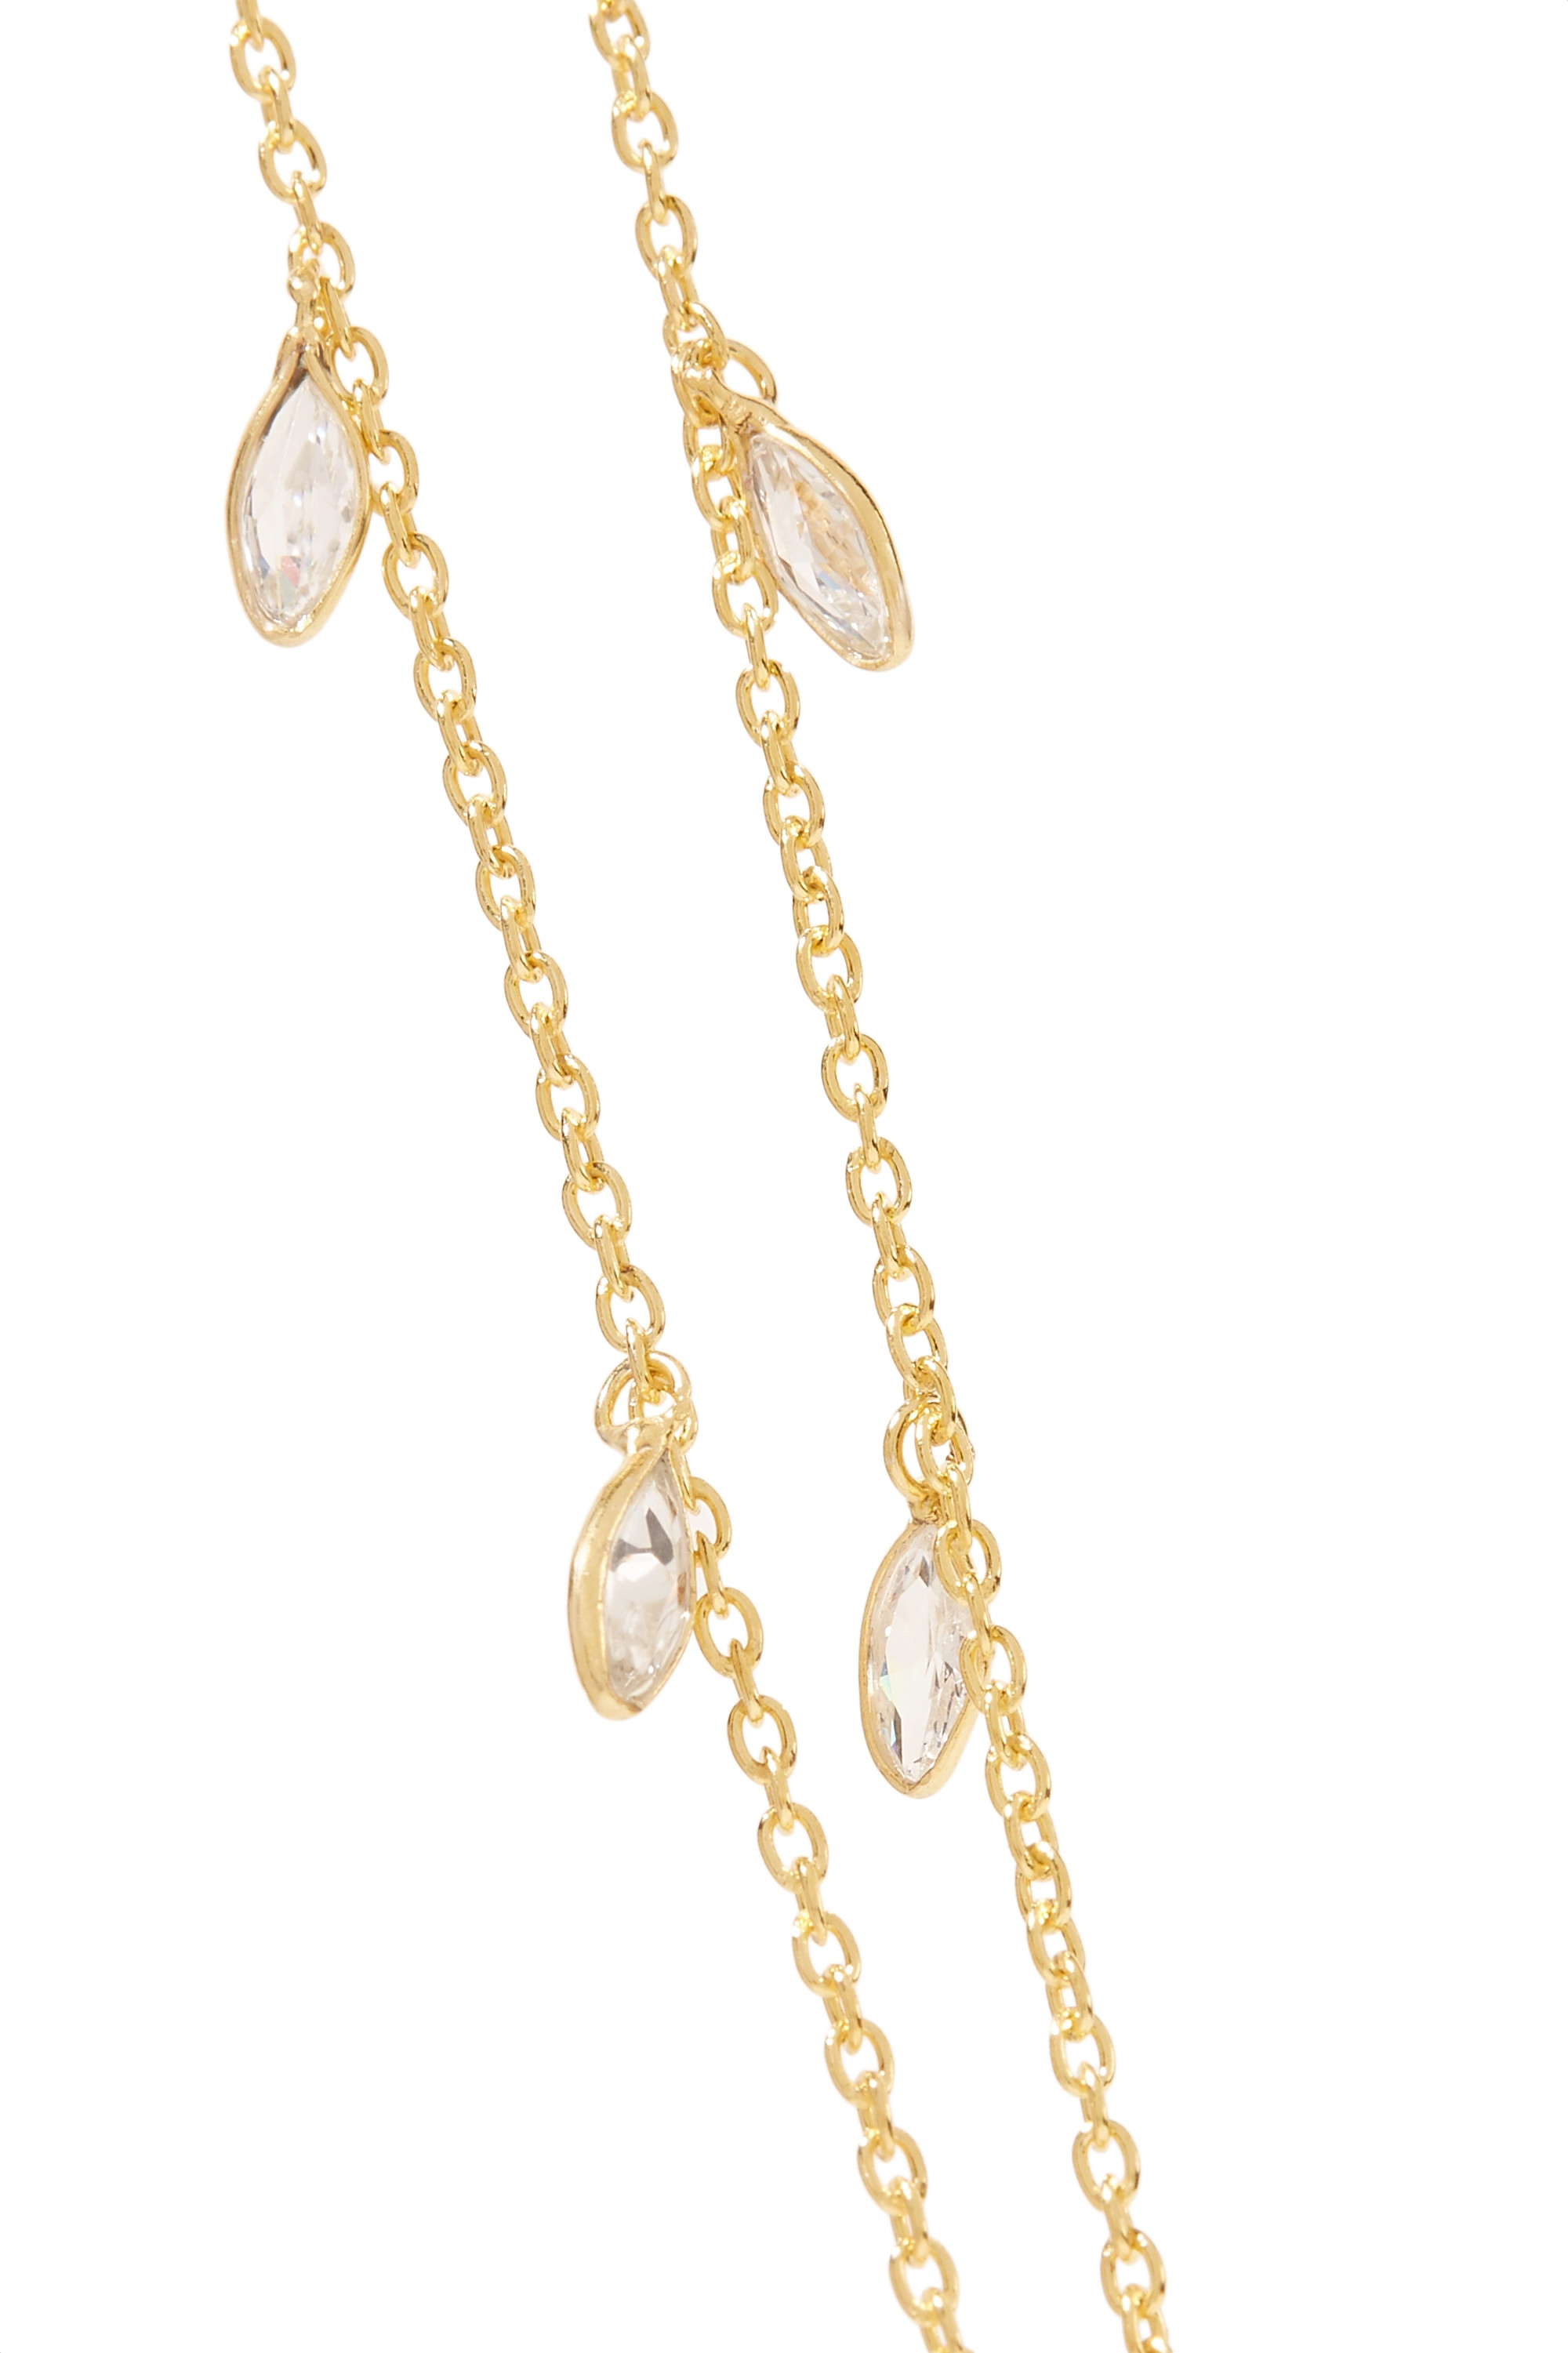 Chan Luu Gold-plated Swarovski crystal body chain